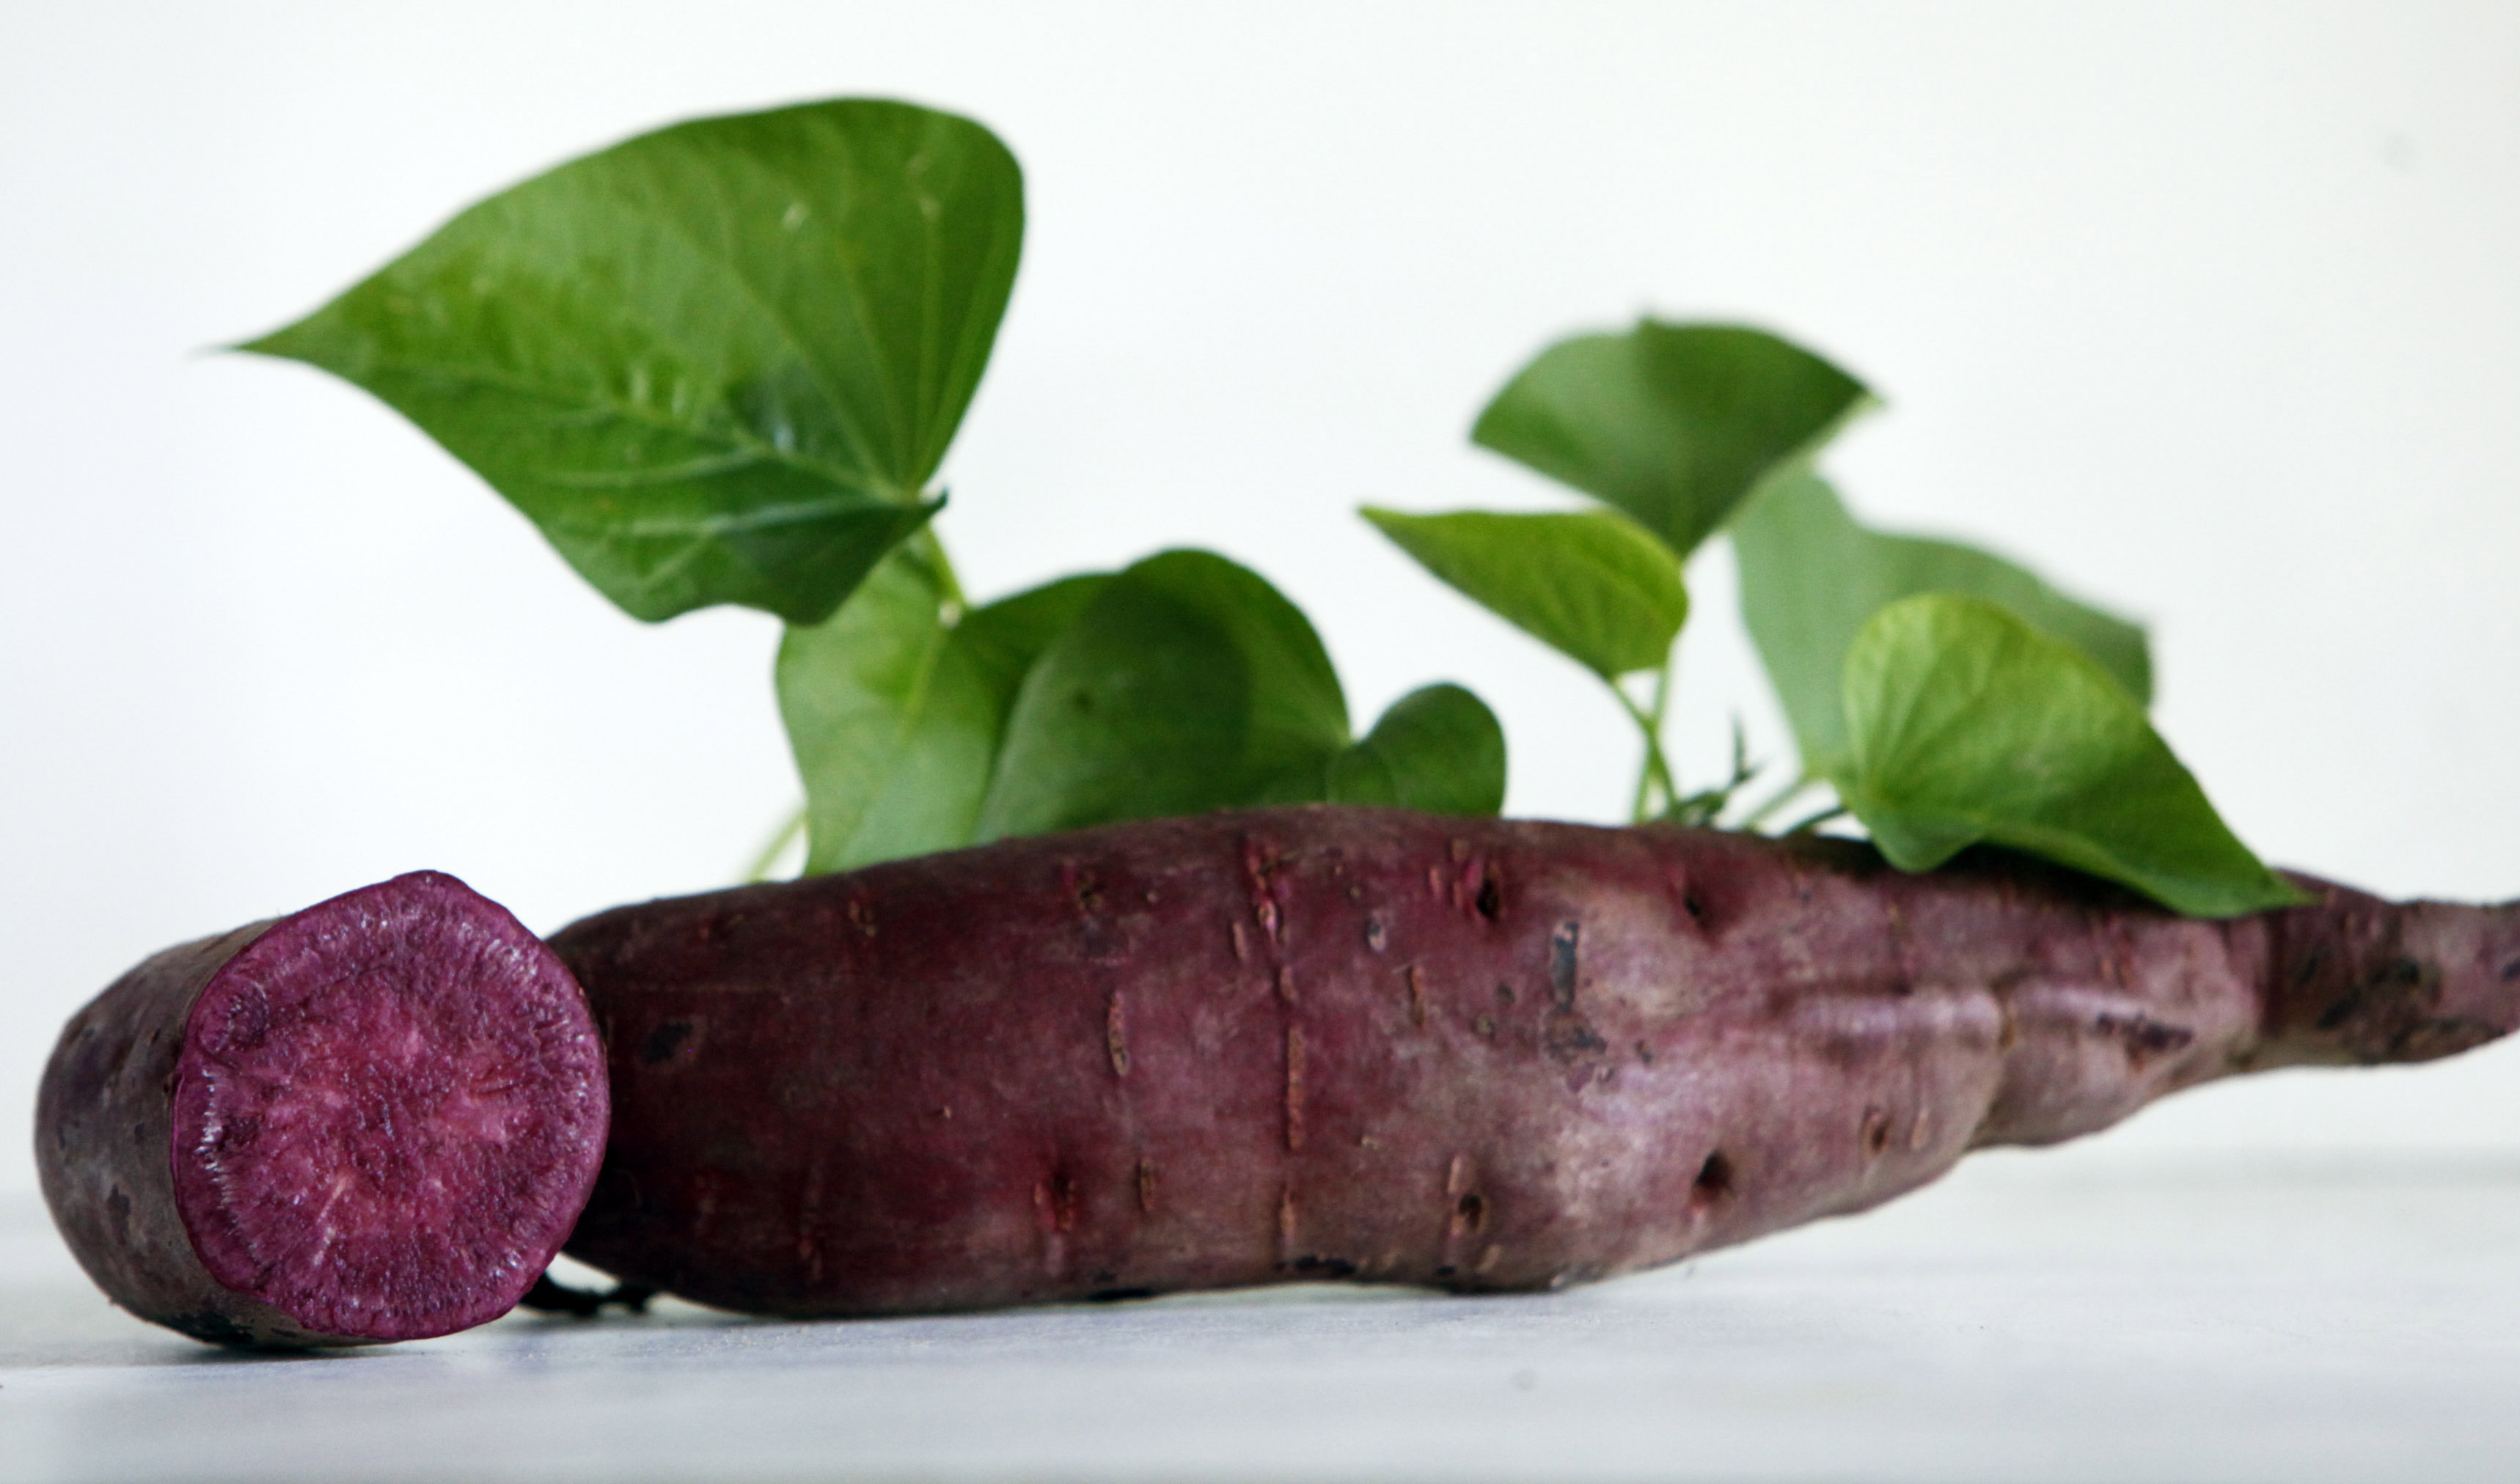 All Purple Sweet PotatoSlips Click To Enlarge